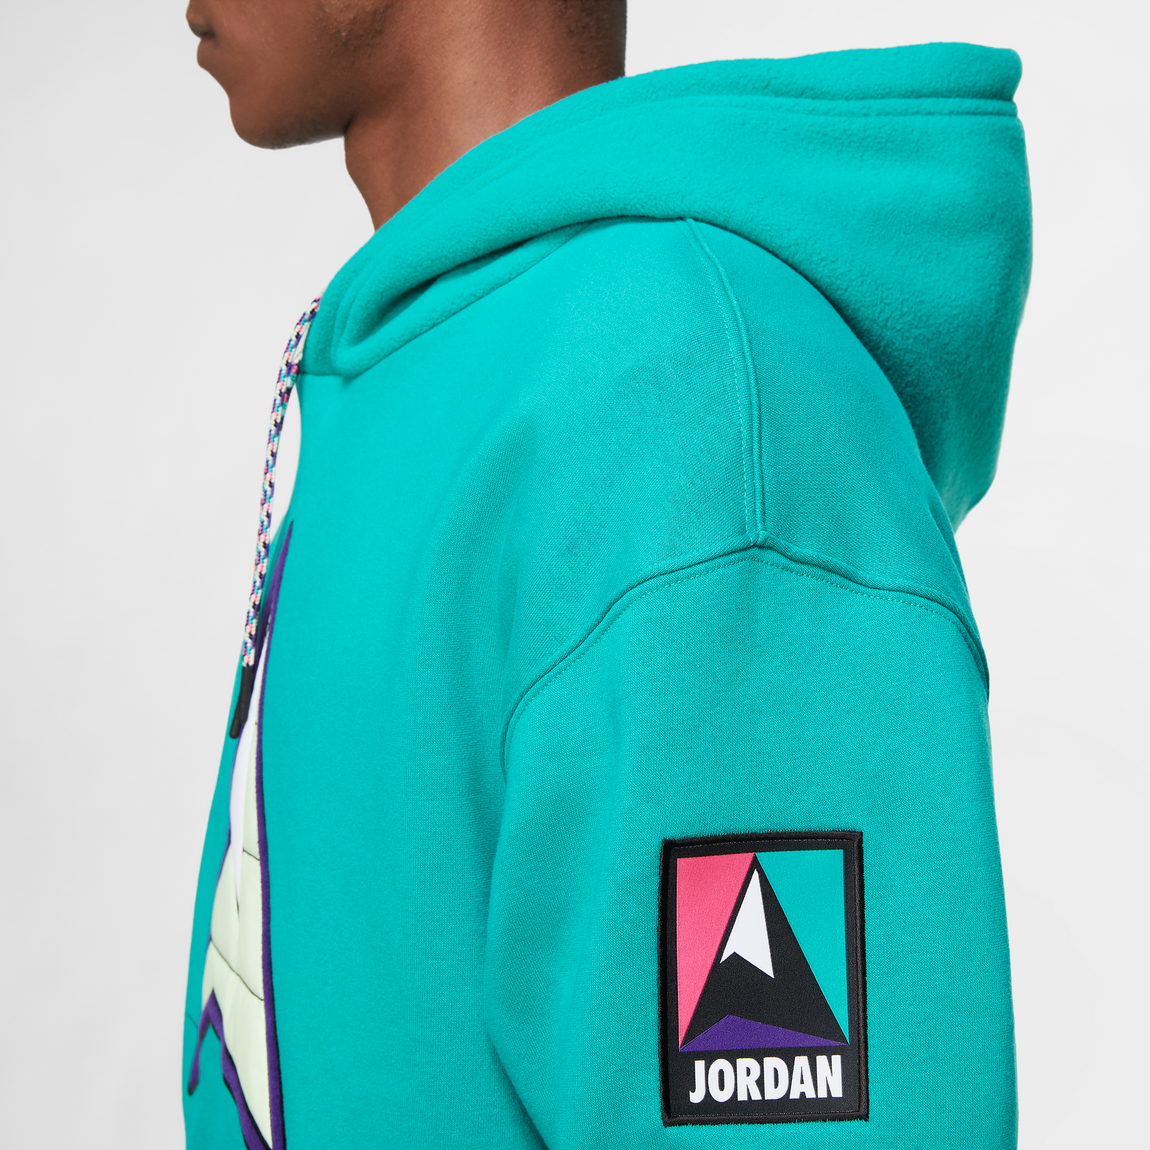 Jordan Winter Utility Hoodie (Neptune Green/Watermelon) - Jordan Winter Utility Hoodie (Neptune Green/Watermelon) -